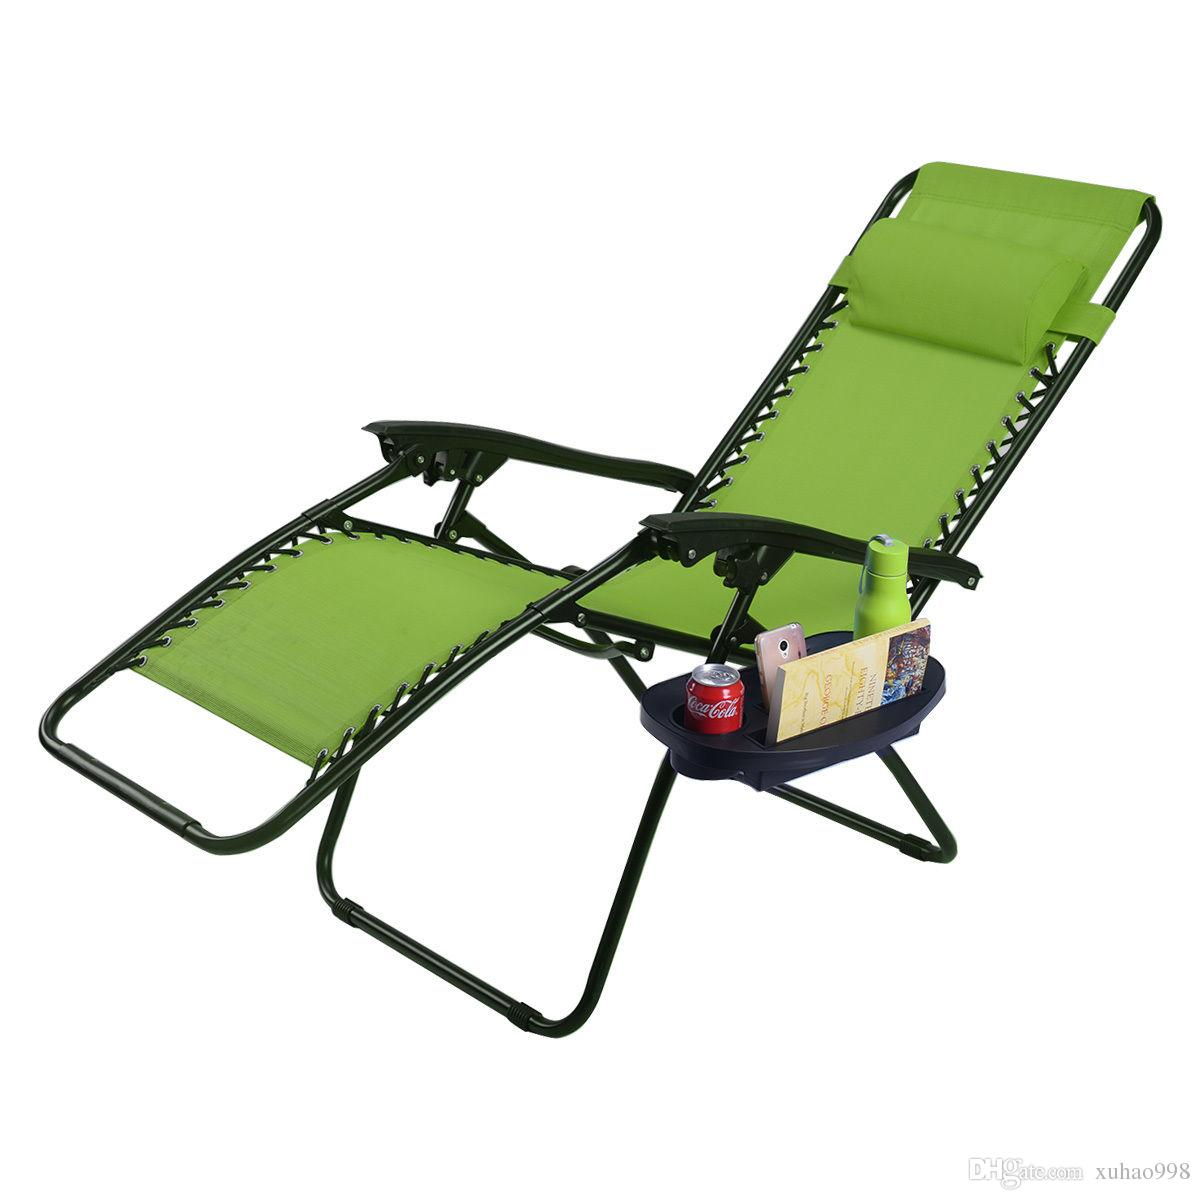 2017 Folding Zero Gravity Reclining Lounge Chairs Outdoor Beach Patio W/Utility Tray From Xuhao998 $33.17 | Dhgate.Com  sc 1 st  DHgate.com : reclining lounge chairs - islam-shia.org